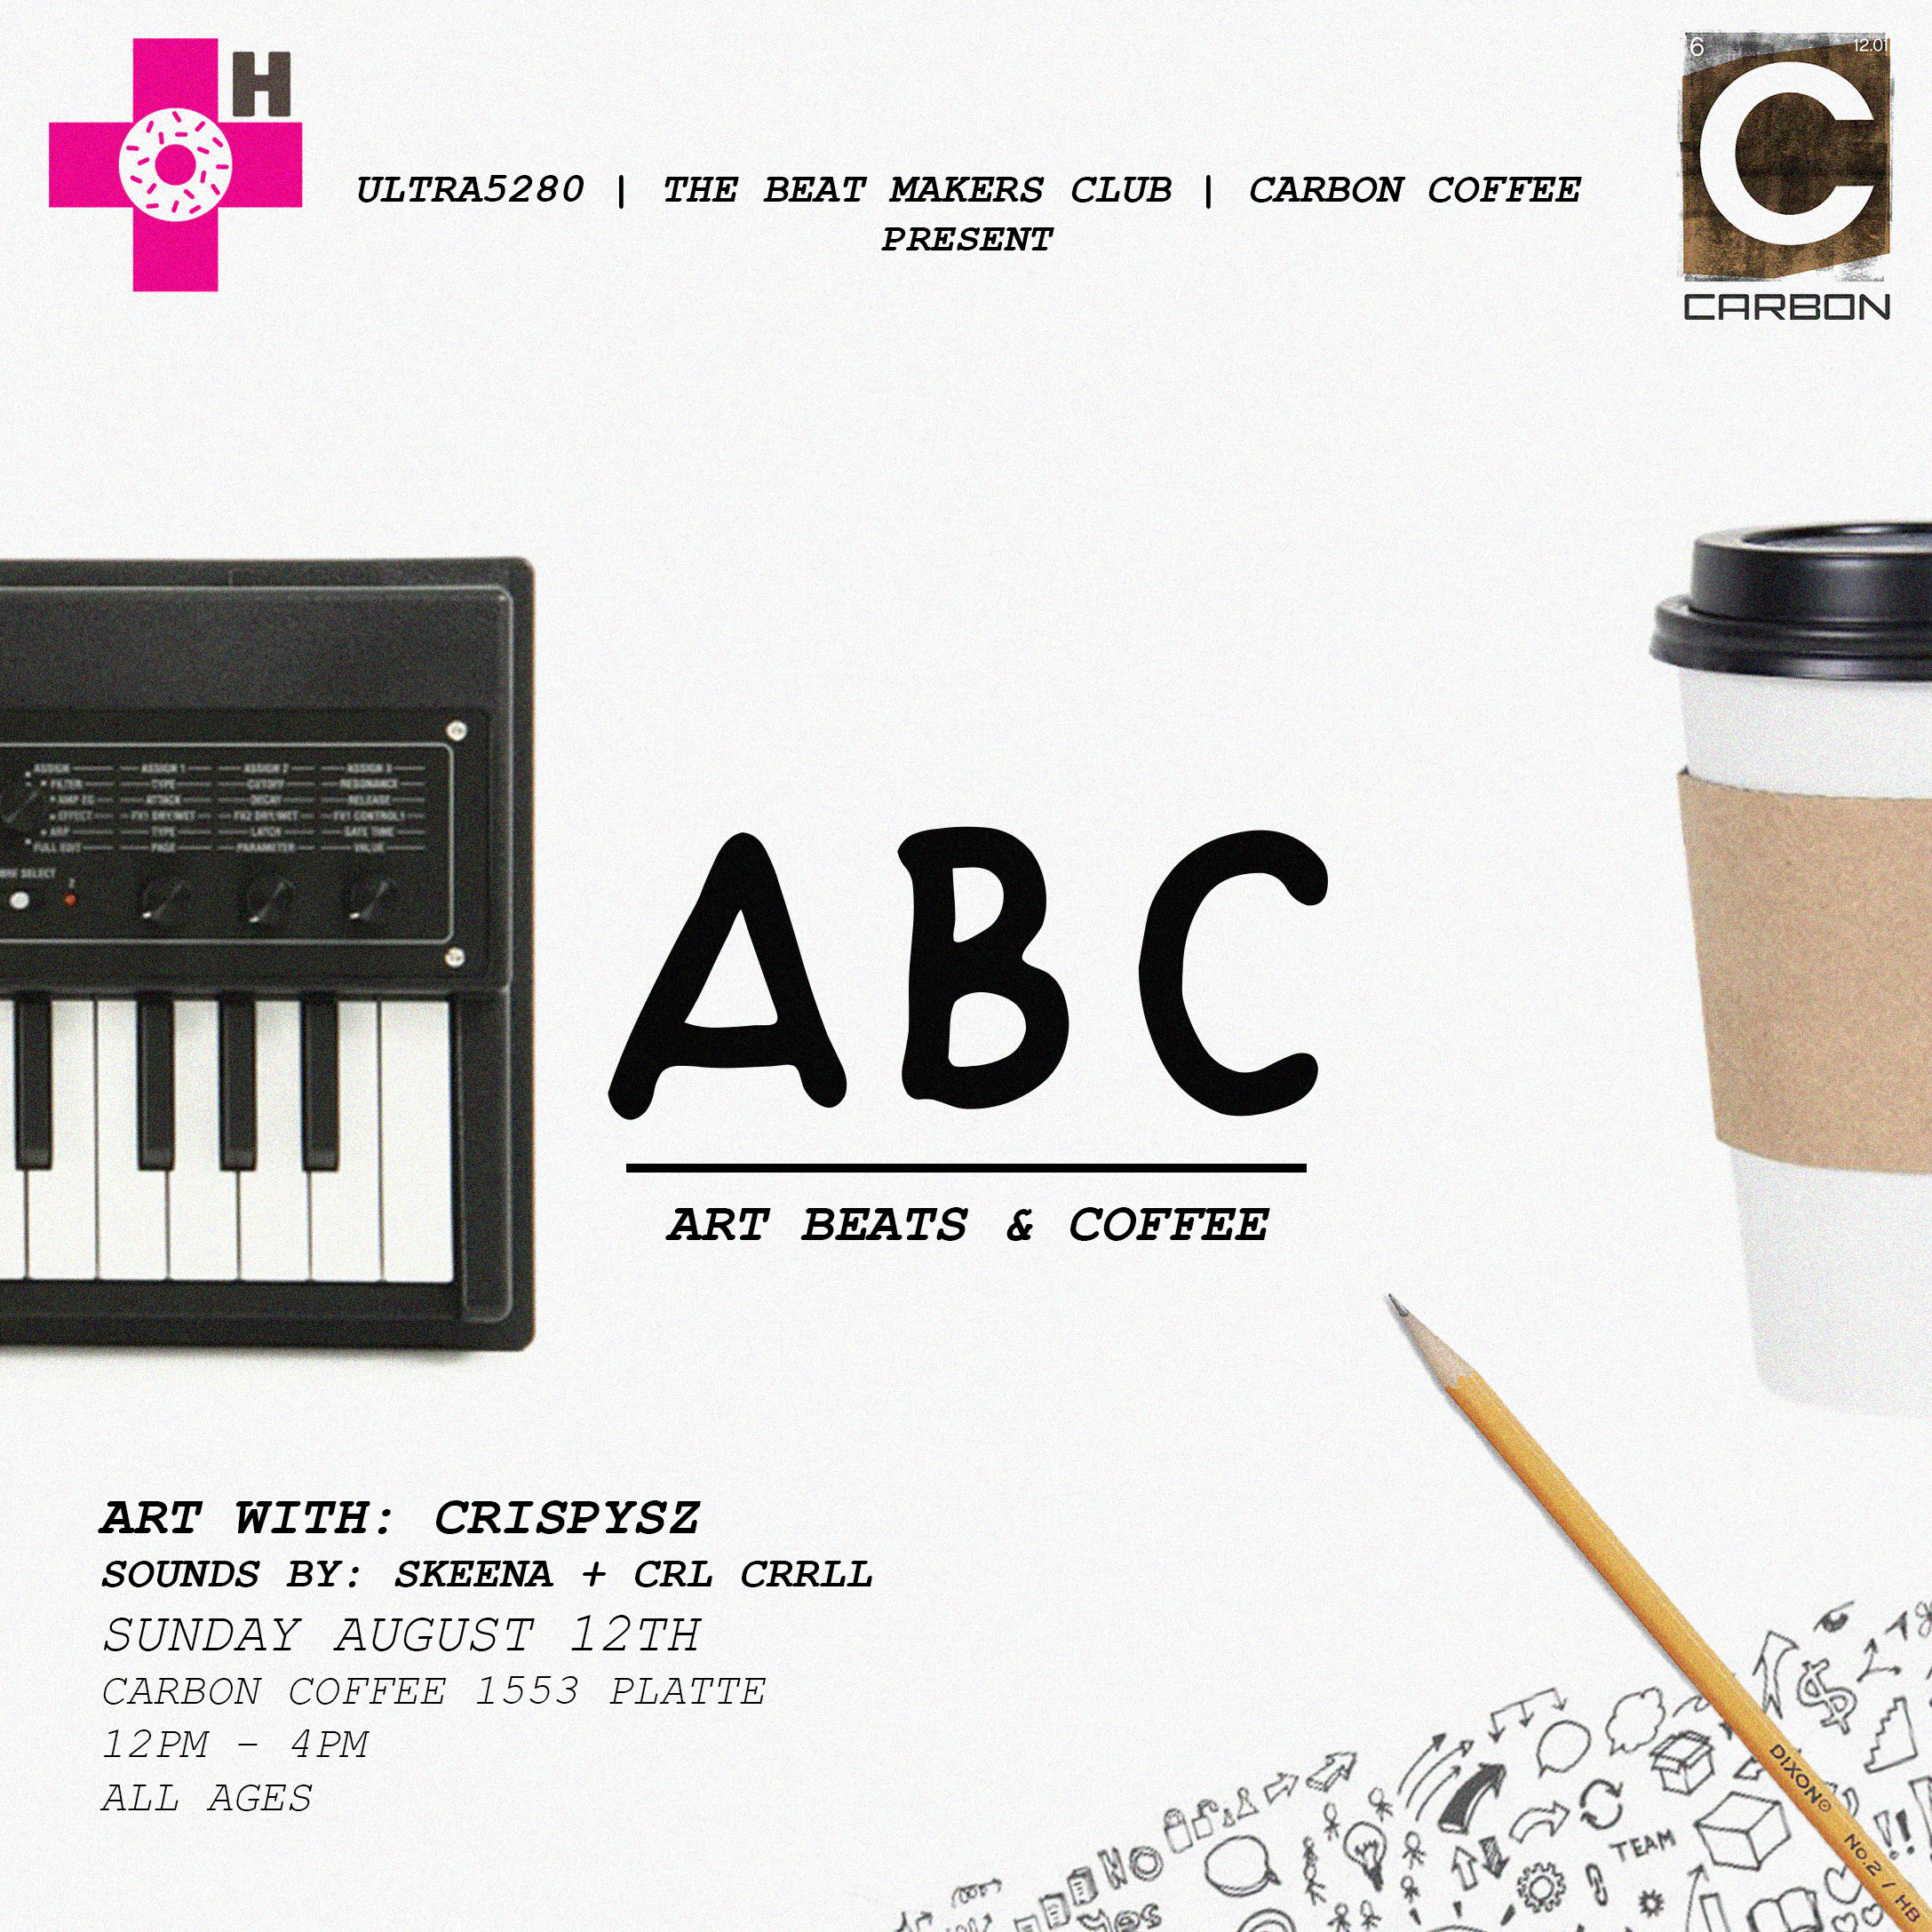 This Sunday August 11th from 12pm to 4pm we will be out on the Carbon Coffee patio for beats and art. Come doodle with Crispysz and enjoy a cup of joe and some beats by CRL CRRLL and Skeena. Free event all ages are welcome.